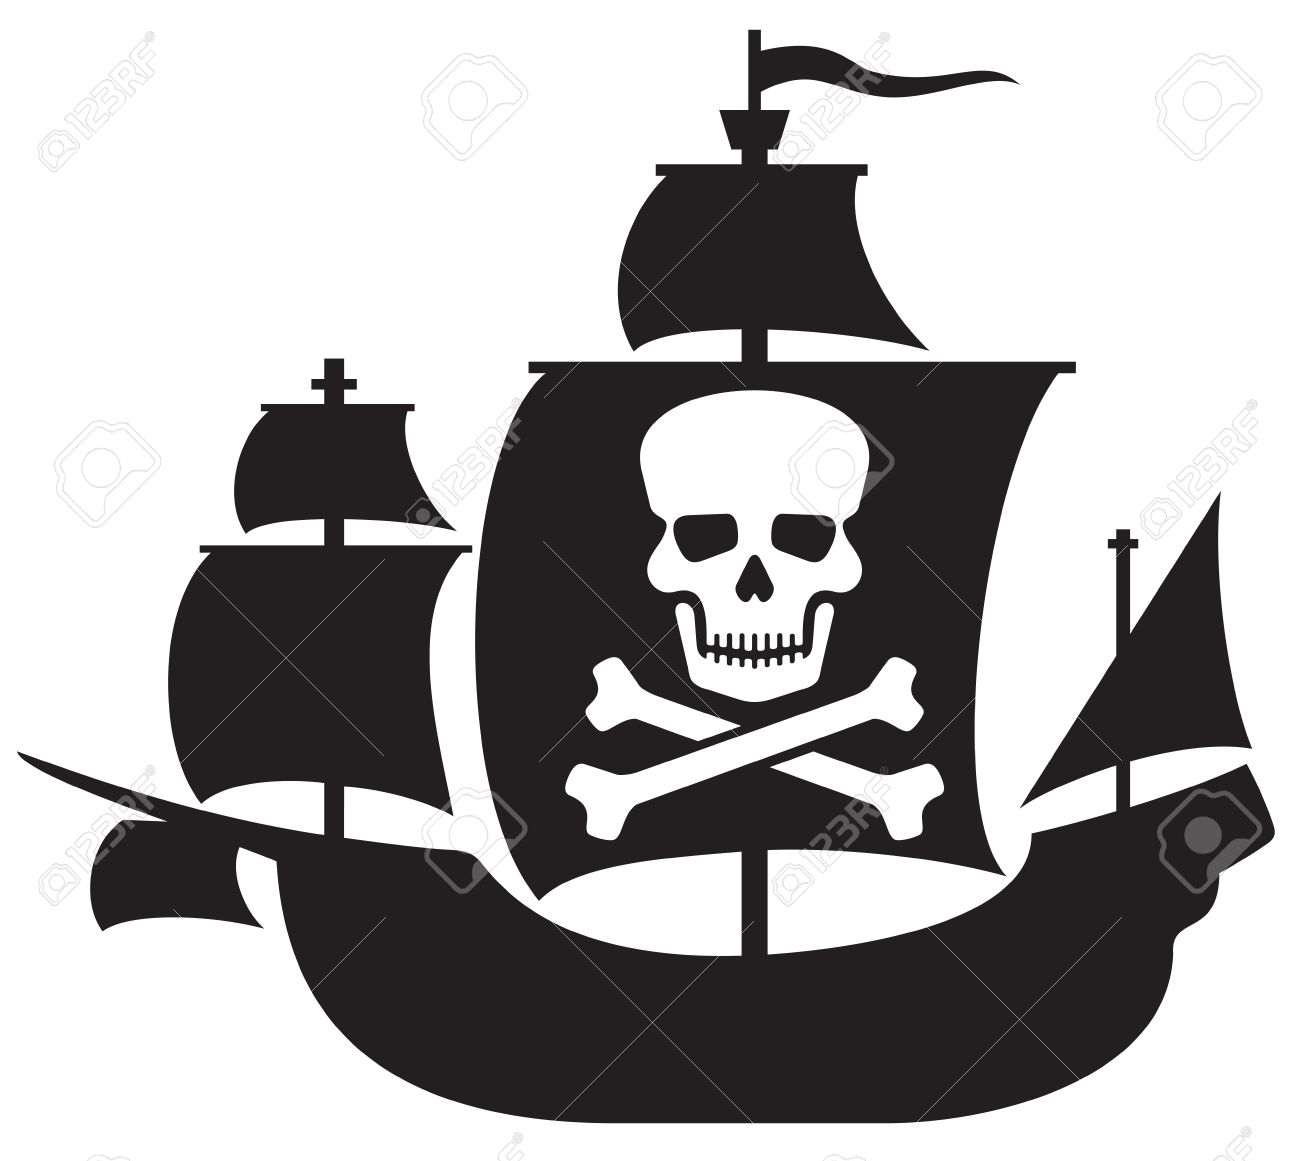 pirate ship with skull with crossed bones on the sail pirate rh 123rf com pirate ship vector free pirate ship vector logo